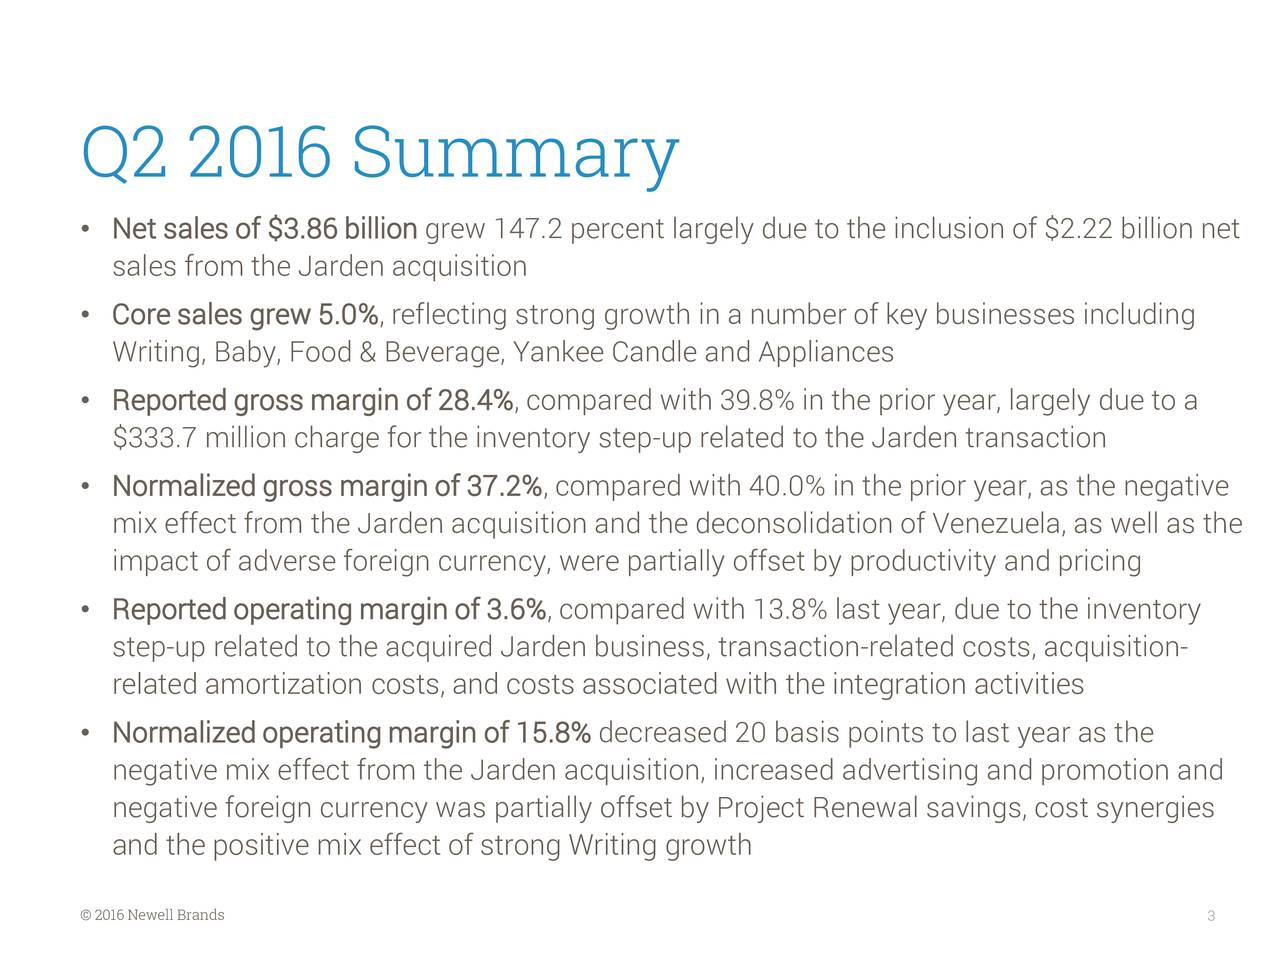 Net sales of $3.86 billion grew 147.2 percent largely due to the inclusion of $2.22 billion net sales from the Jarden acquisition Core sales grew 5.0%, reflecting strong growth in a number of key businesses including Writing, Baby, Food & Beverage, Yankee Candle and Appliances Reported gross margin of 28.4%, compared with 39.8% in the prior year, largely due to a $333.7 million charge for the inventory step-up related to the Jarden transaction Normalized gross margin of 37.2%, compared with 40.0% in the prior year, as the negative mix effect from the Jarden acquisition and the deconsolidation of Venezuela, as well as the impact of adverse foreign currency, were partially offset by productivity and pricing Reported operating margin of 3.6%, compared with 13.8% last year, due to the inventory step-up related to the acquired Jarden business, transaction-related costs, acquisition- related amortization costs, and costs associated with the integration activities Normalized operating margin of 15.8% decreased 20 basis points to last year as the negative mix effect from the Jarden acquisition, increased advertising and promotion and negative foreign currency was partially offset by Project Renewal savings, cost synergies and the positive mix effect of strong Writing growth 2016 Newell Brands 3